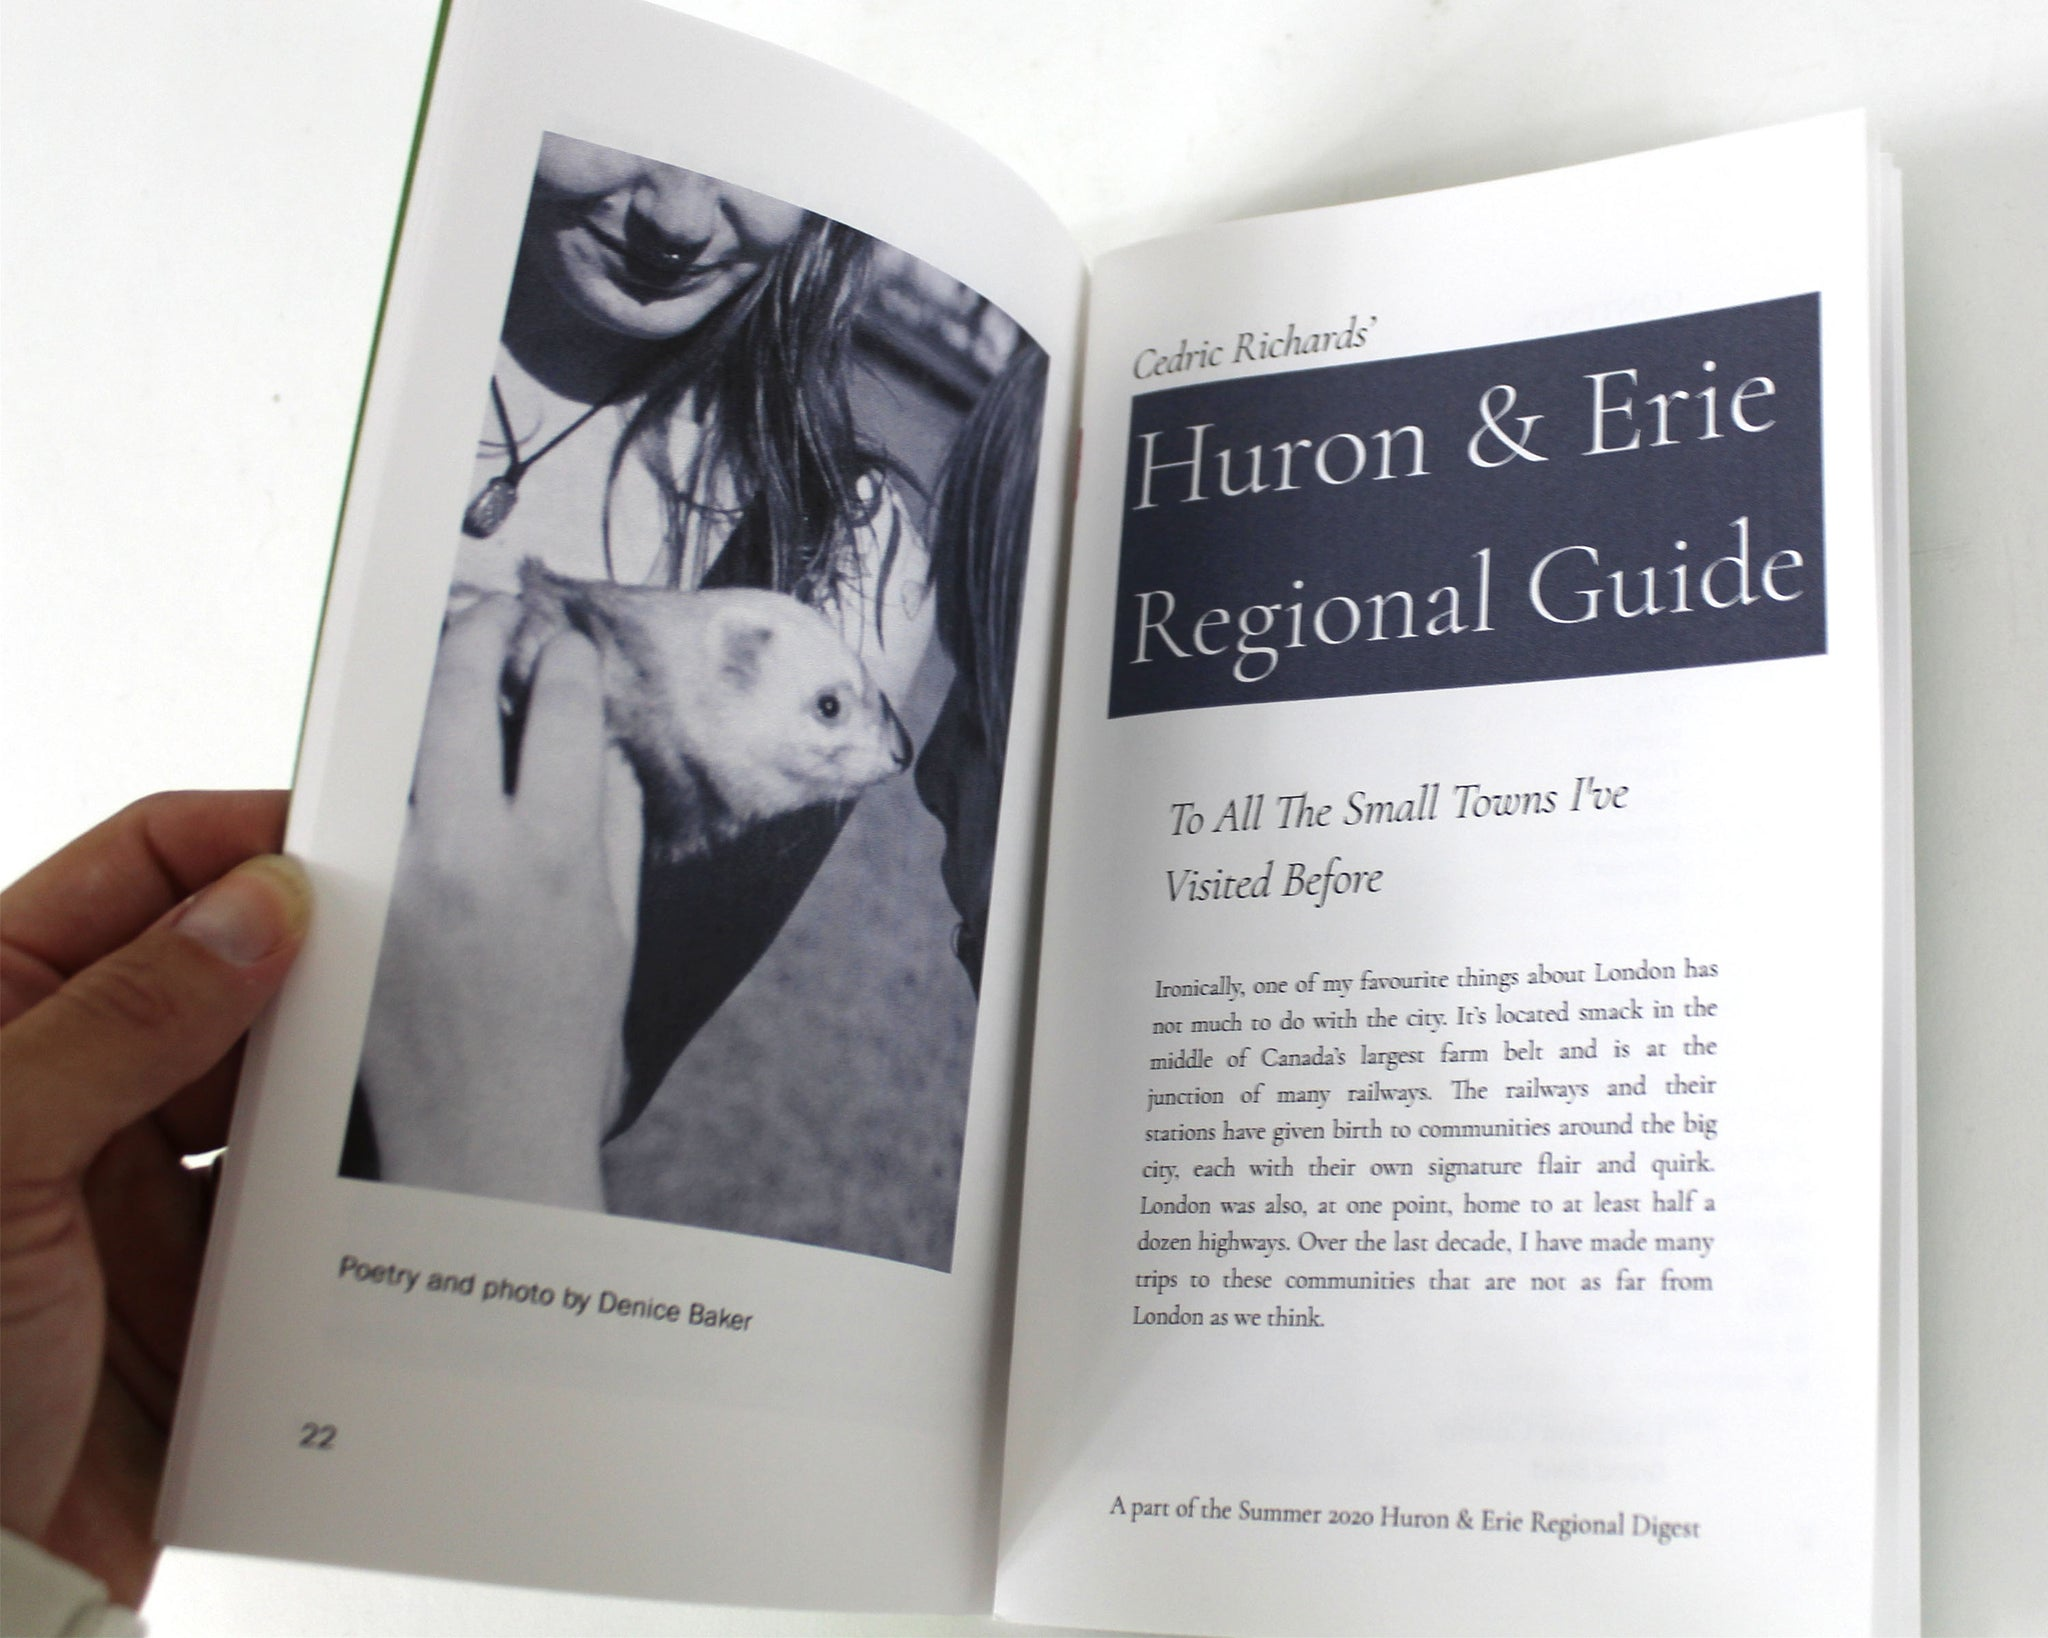 H.E.R.D Summer 2020 Publication